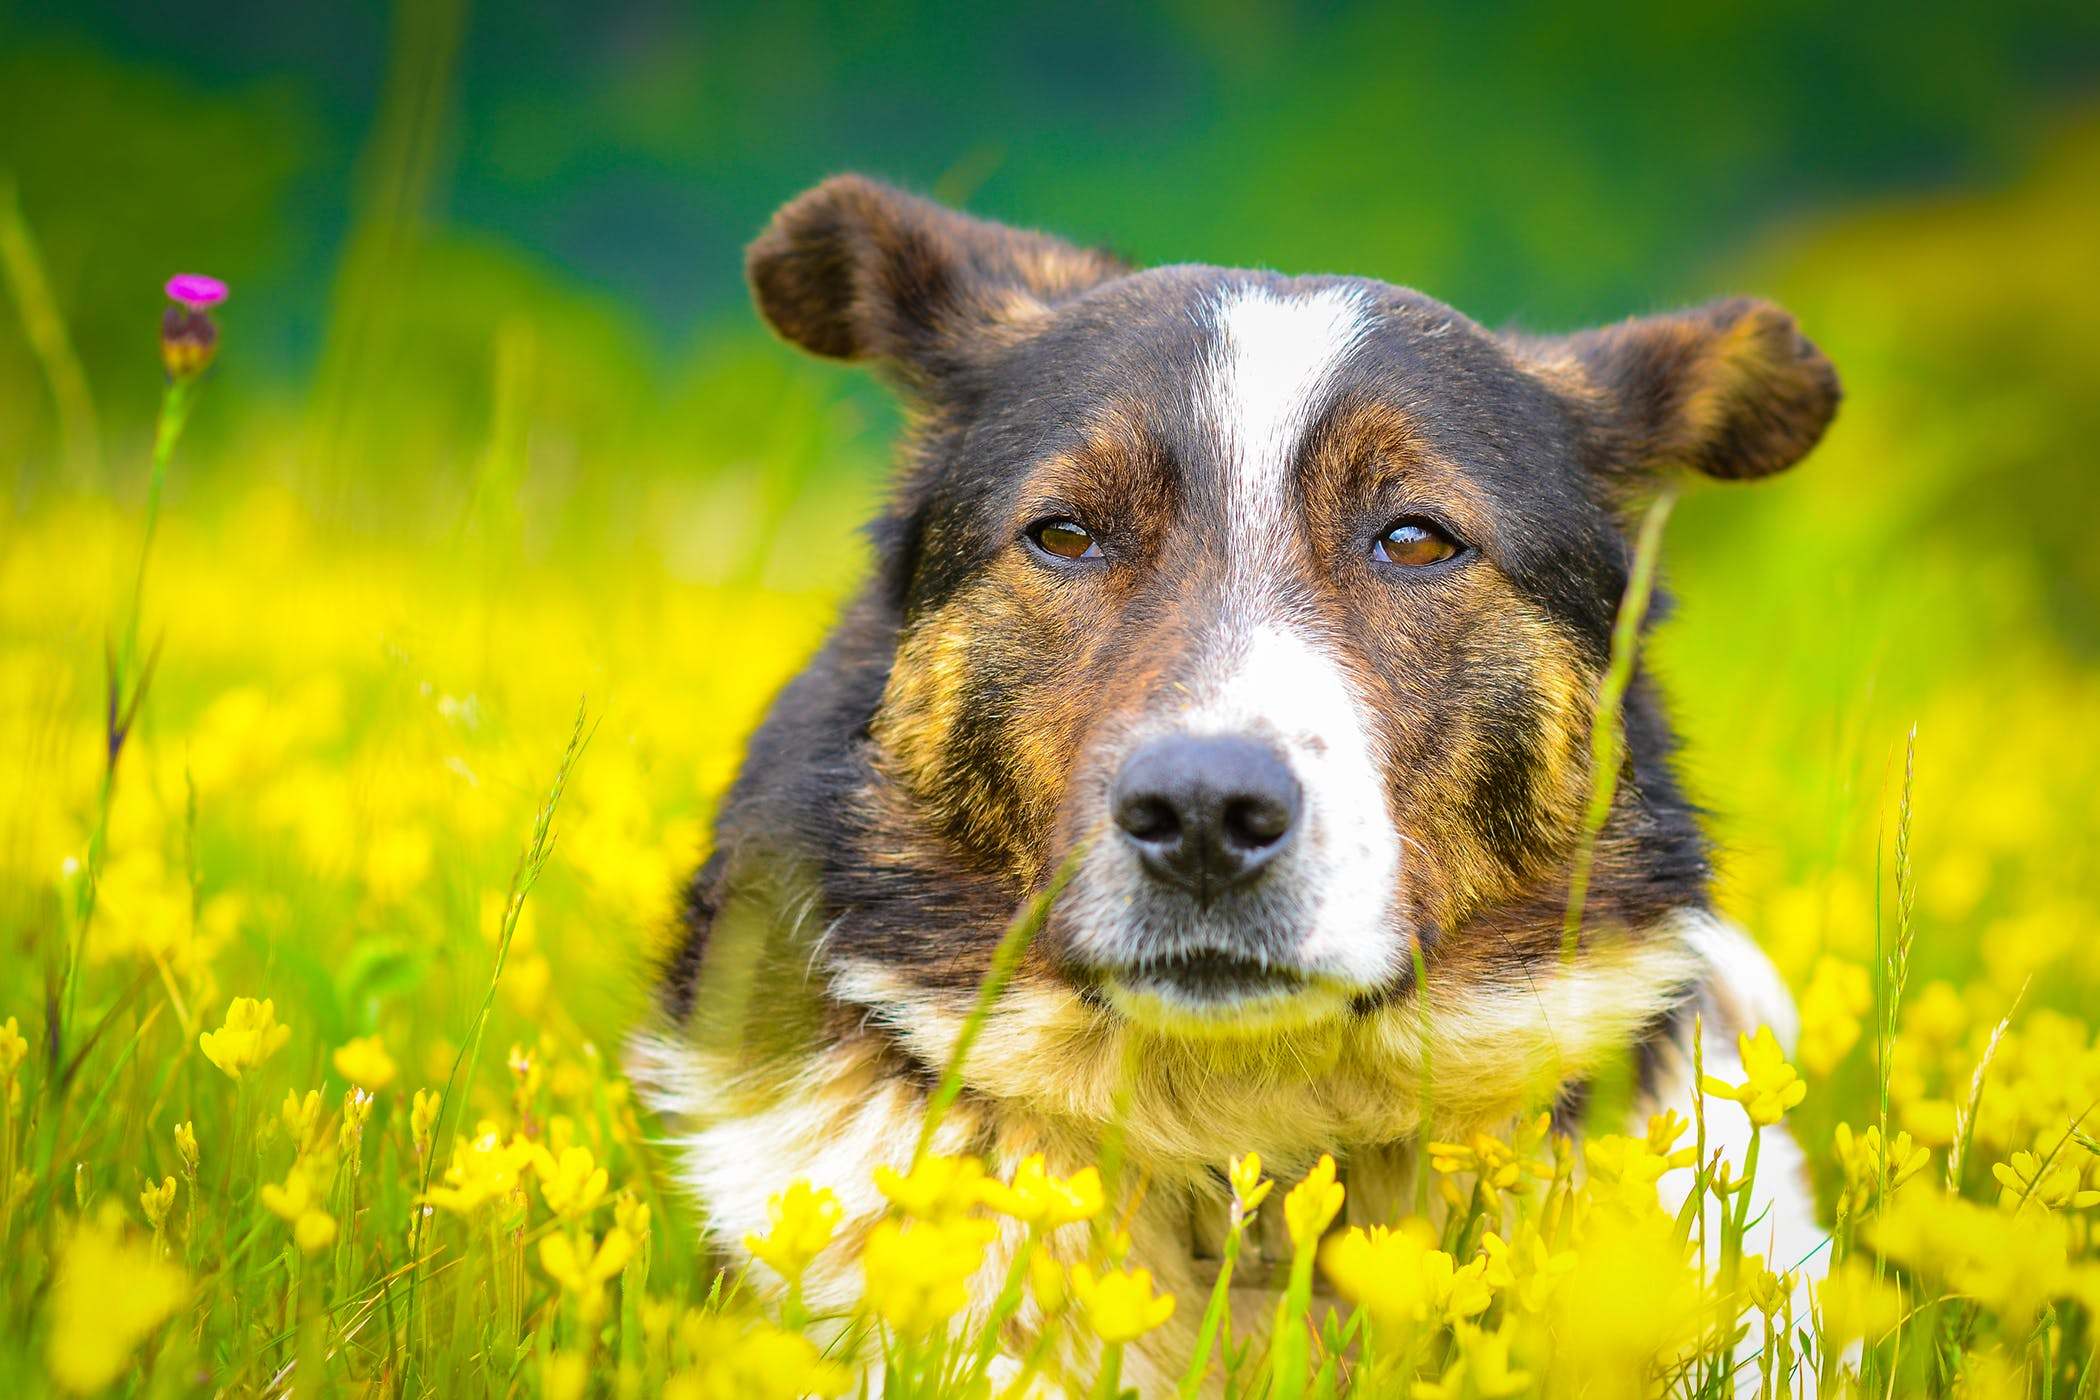 Injections Of Growth Hormone in Dogs